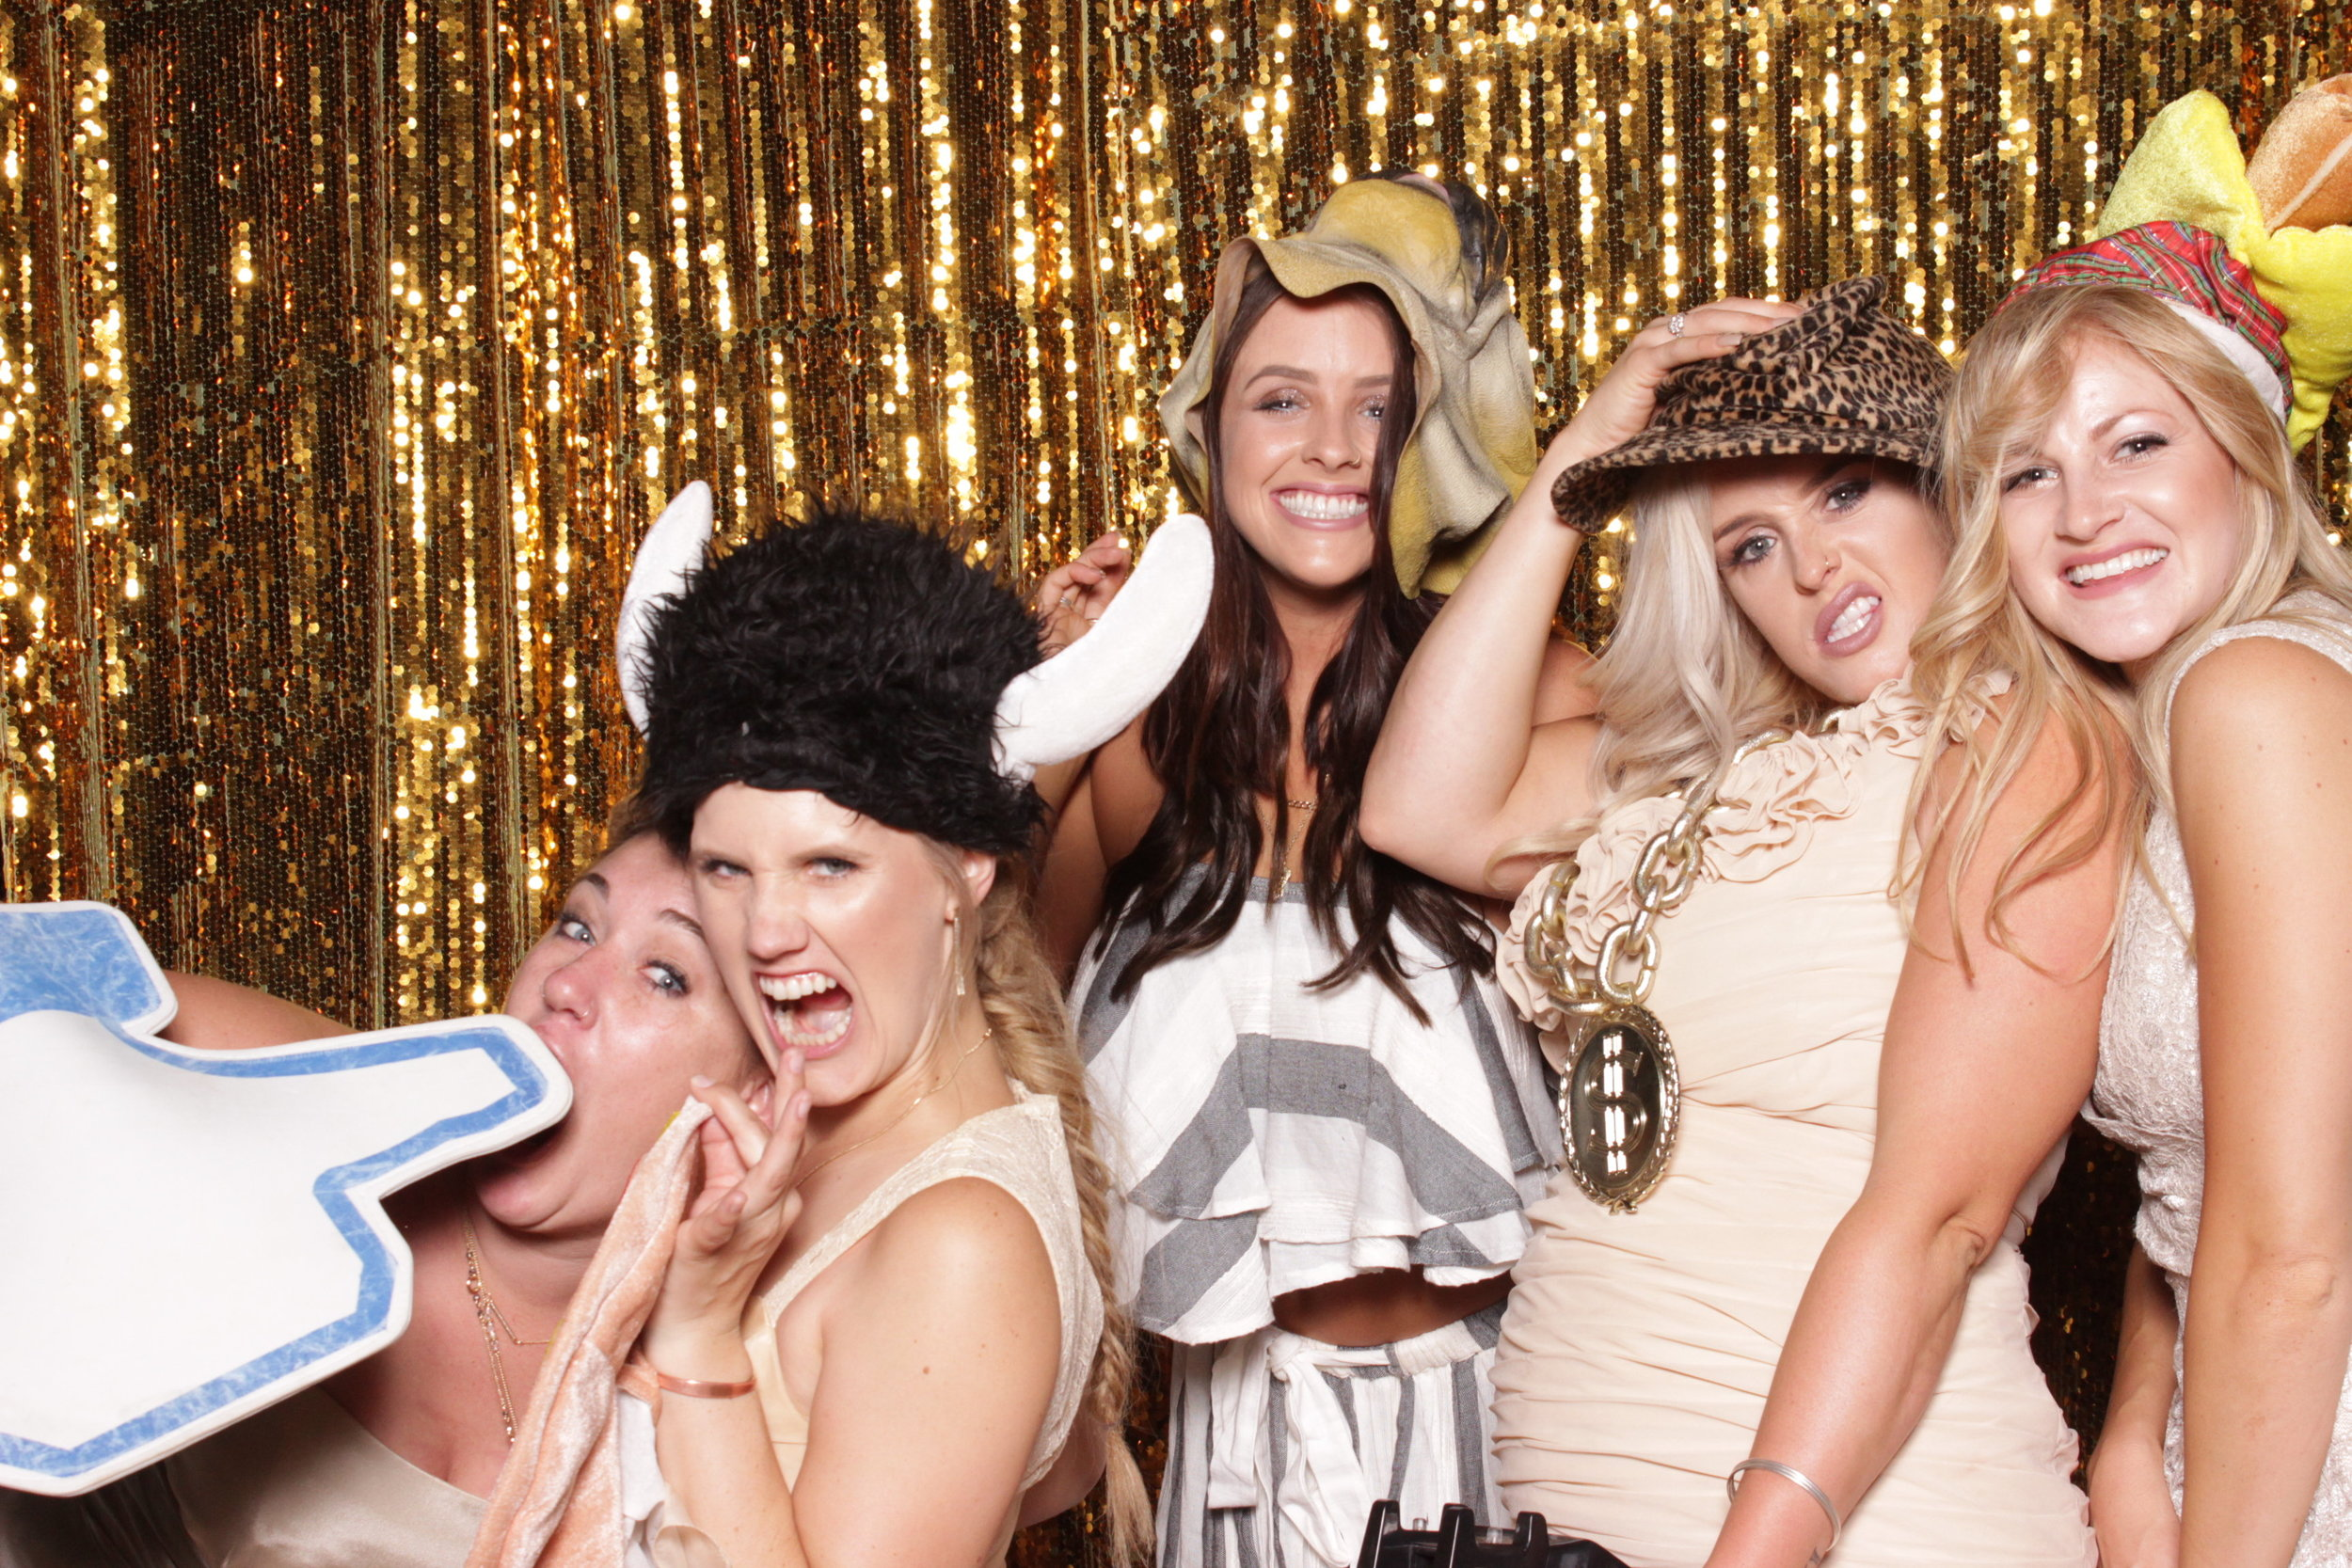 photo-booths-in-chico-rental-wedding-drunk-bridesmaids